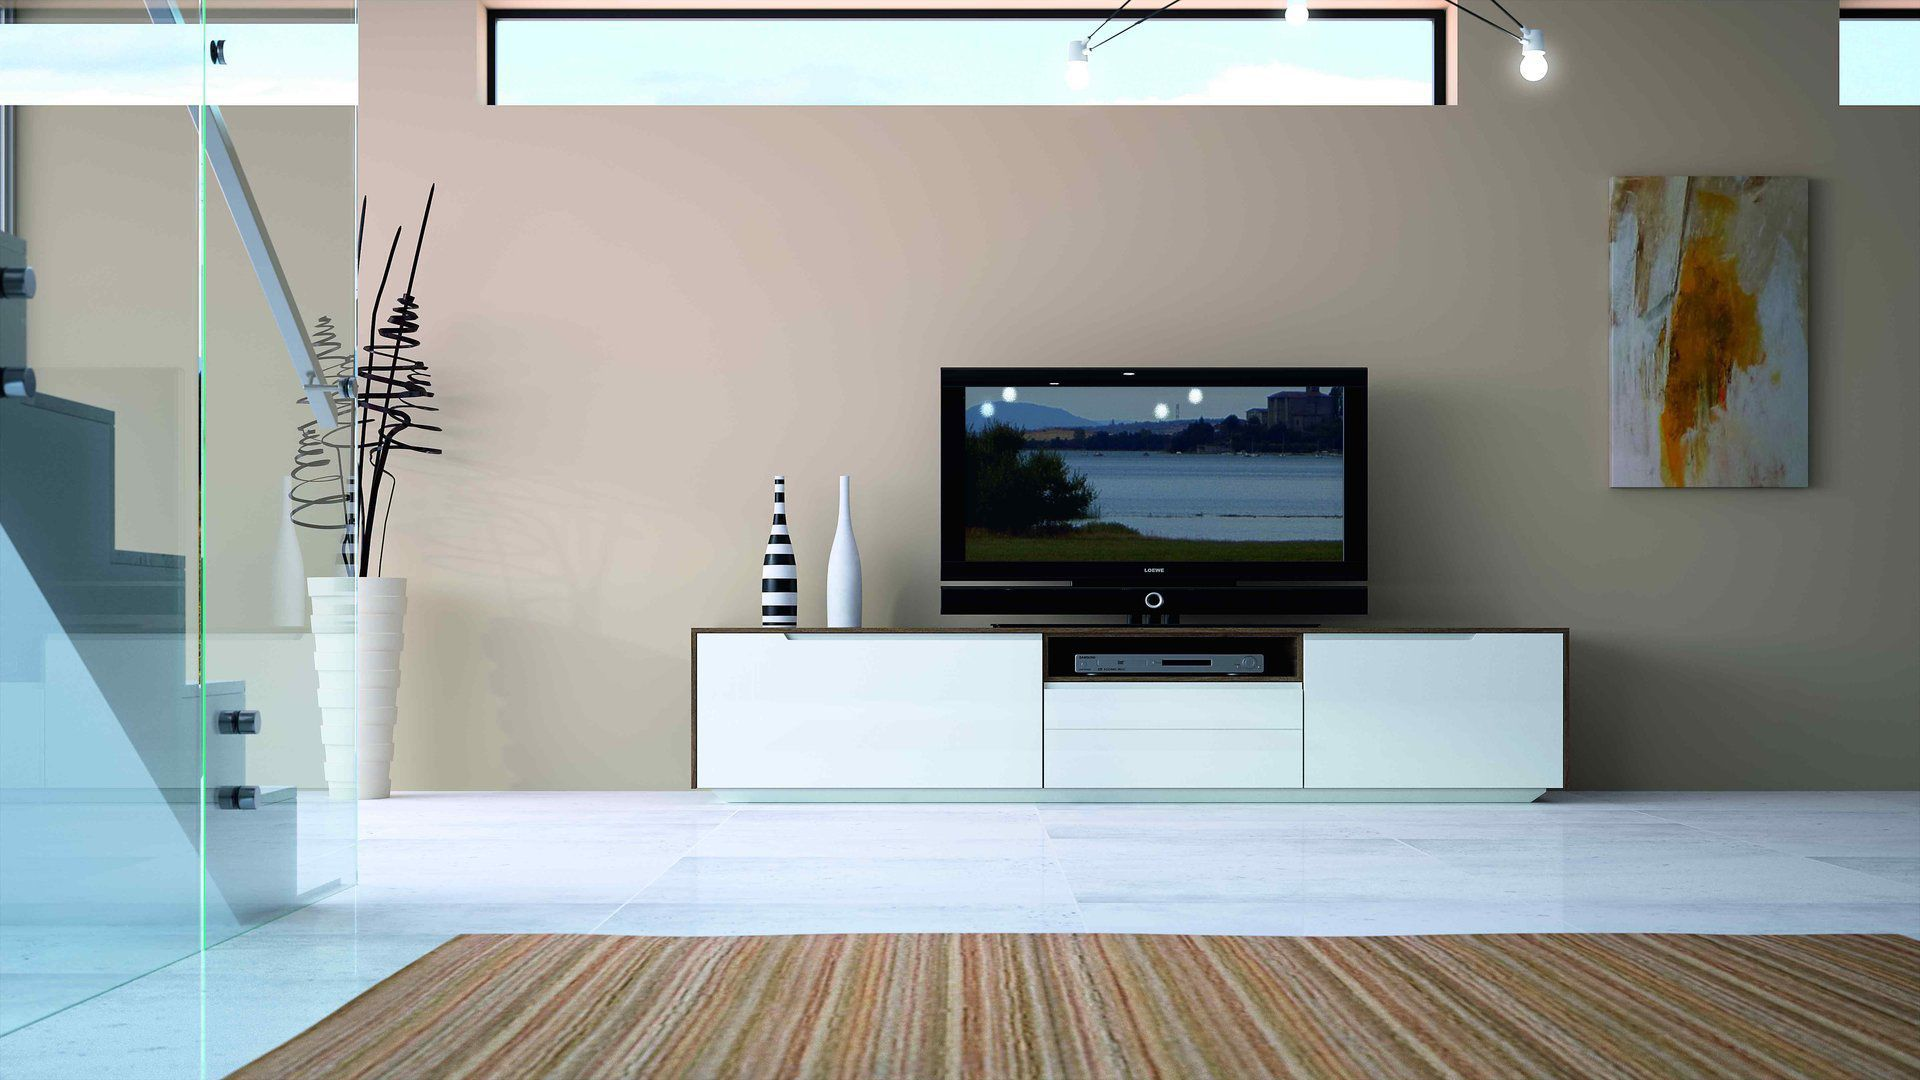 Meuble Tv Contemporain En Bois Nice Movis Furniture # Meuble Tv Contemporain Bois